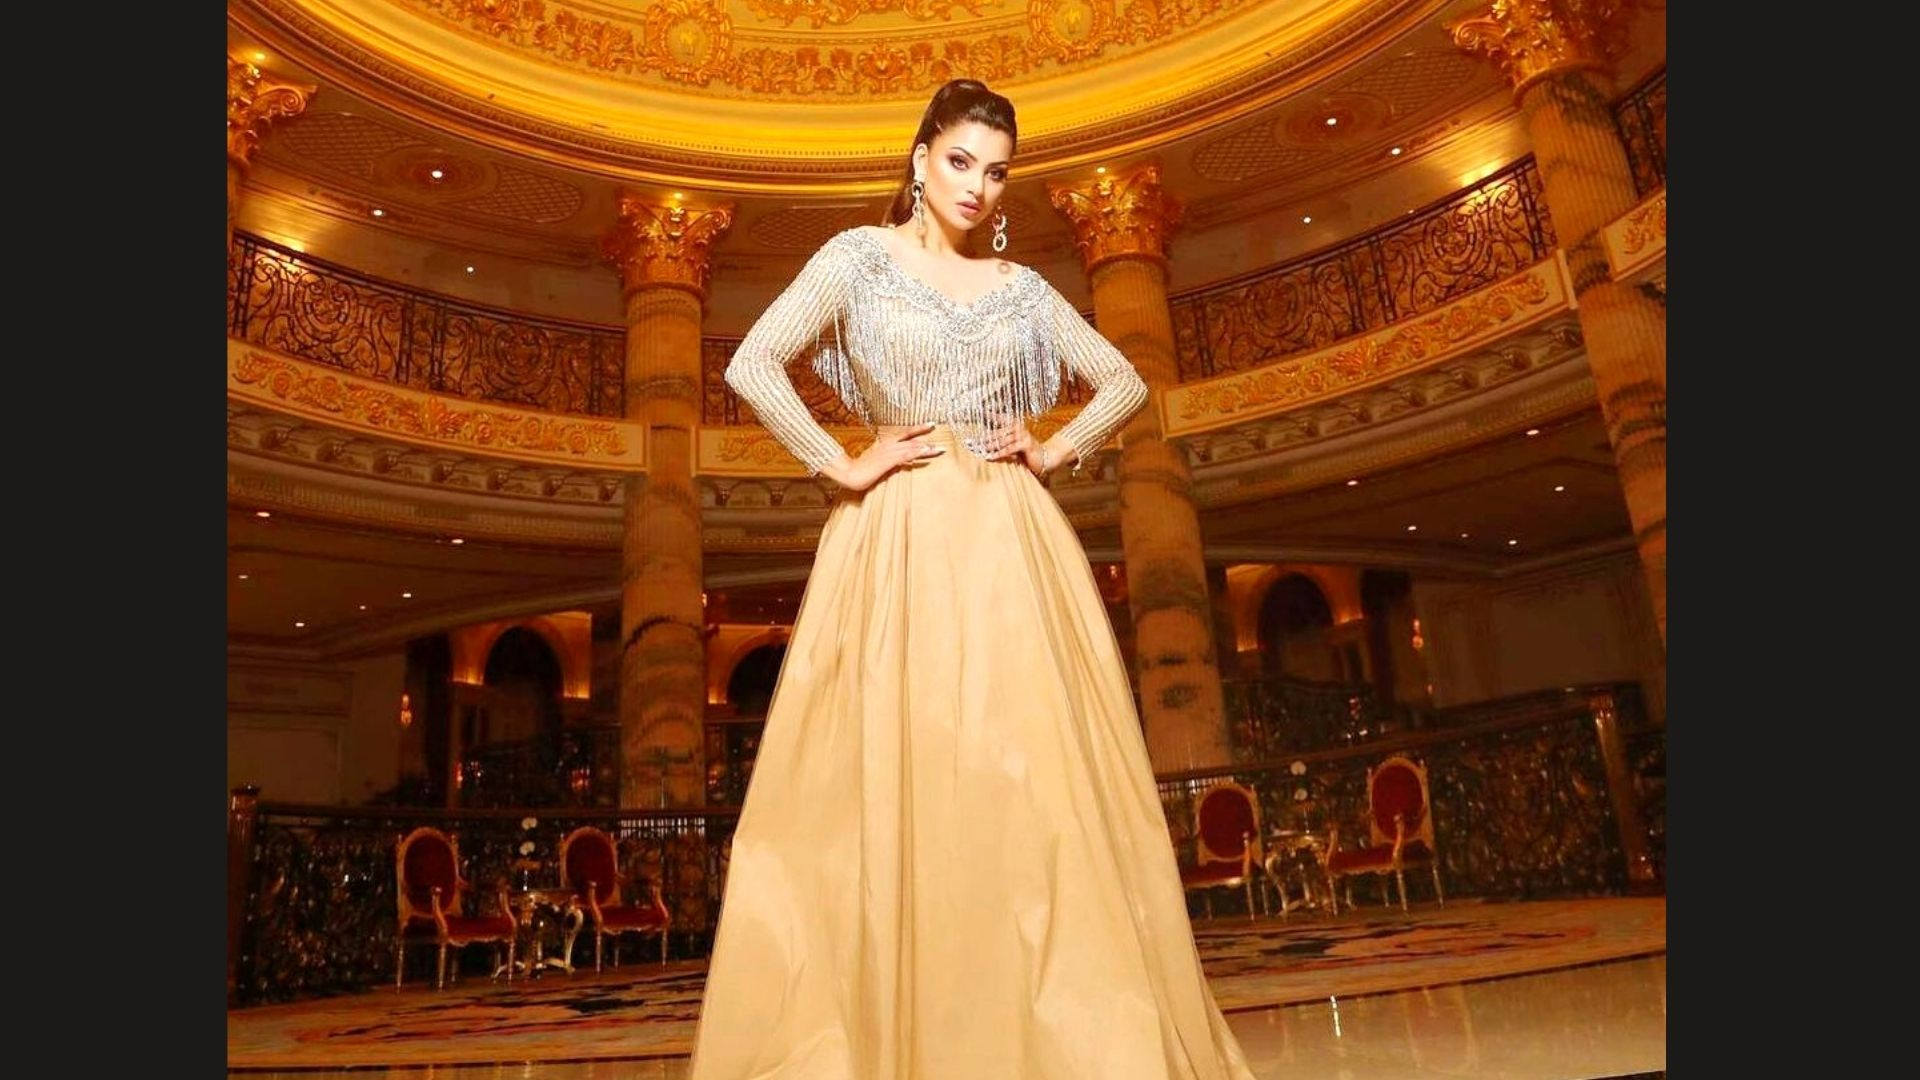 Urvashi Rautela Shows Off Her Luxurious Golden Fringe Tassel Embellished Gown That You'd Want To Own RN